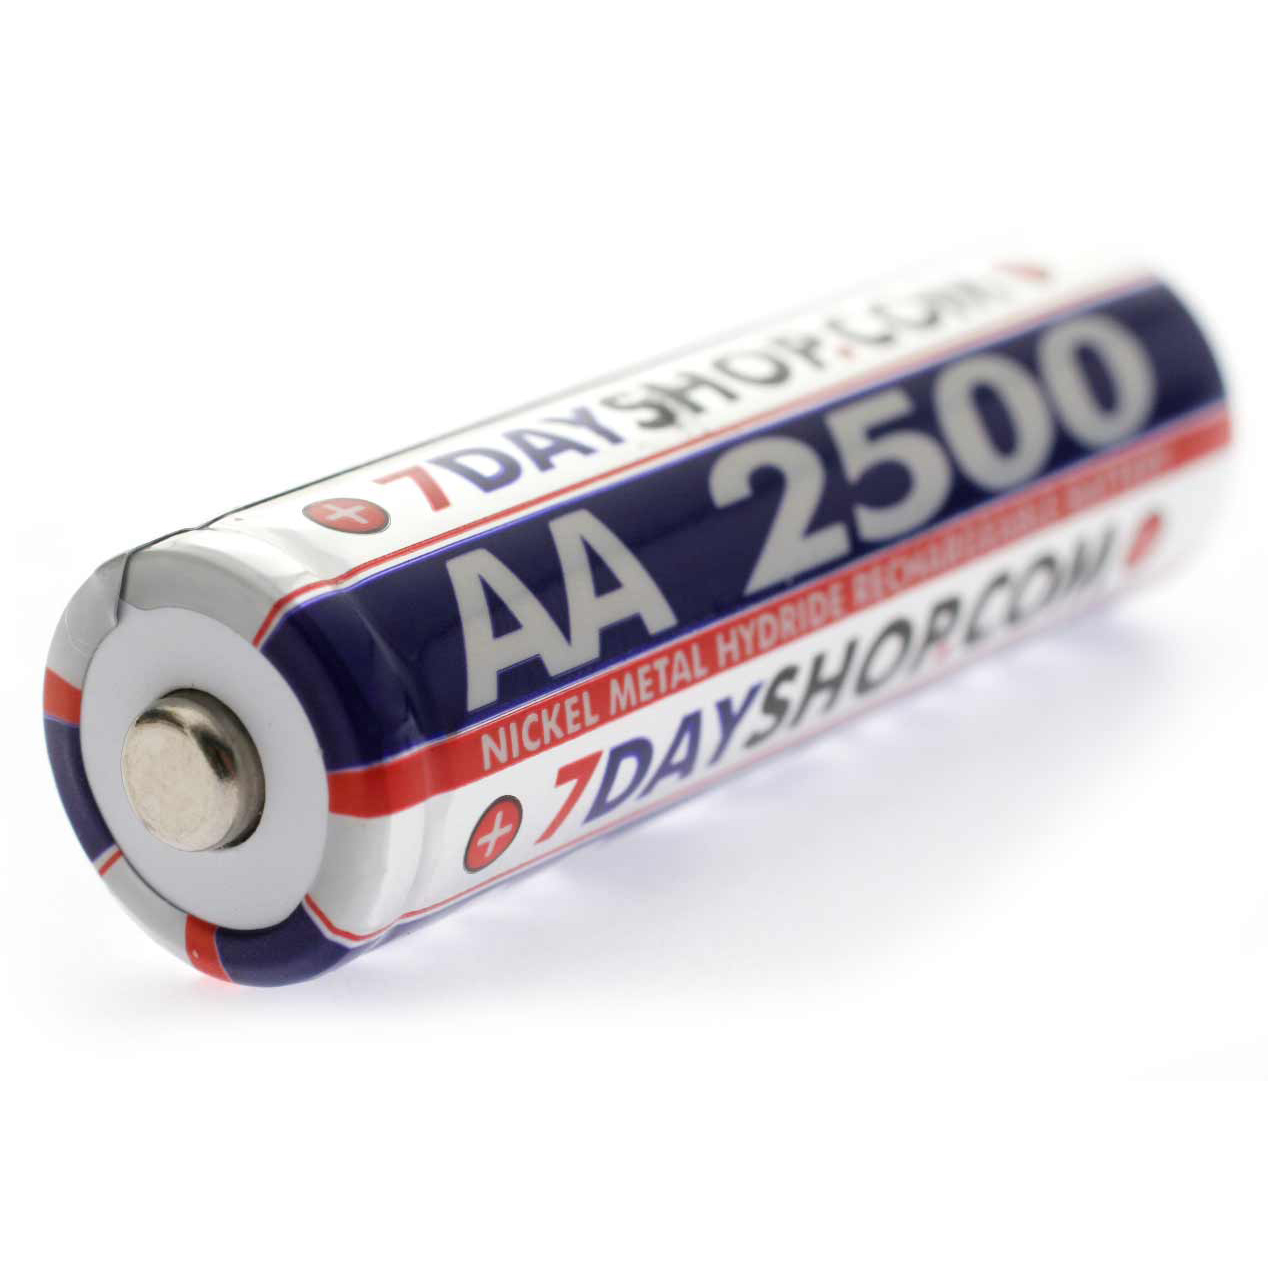 7dayshop nimh rechargeable batteries aa aaa c cell d for Pilas recargables aa